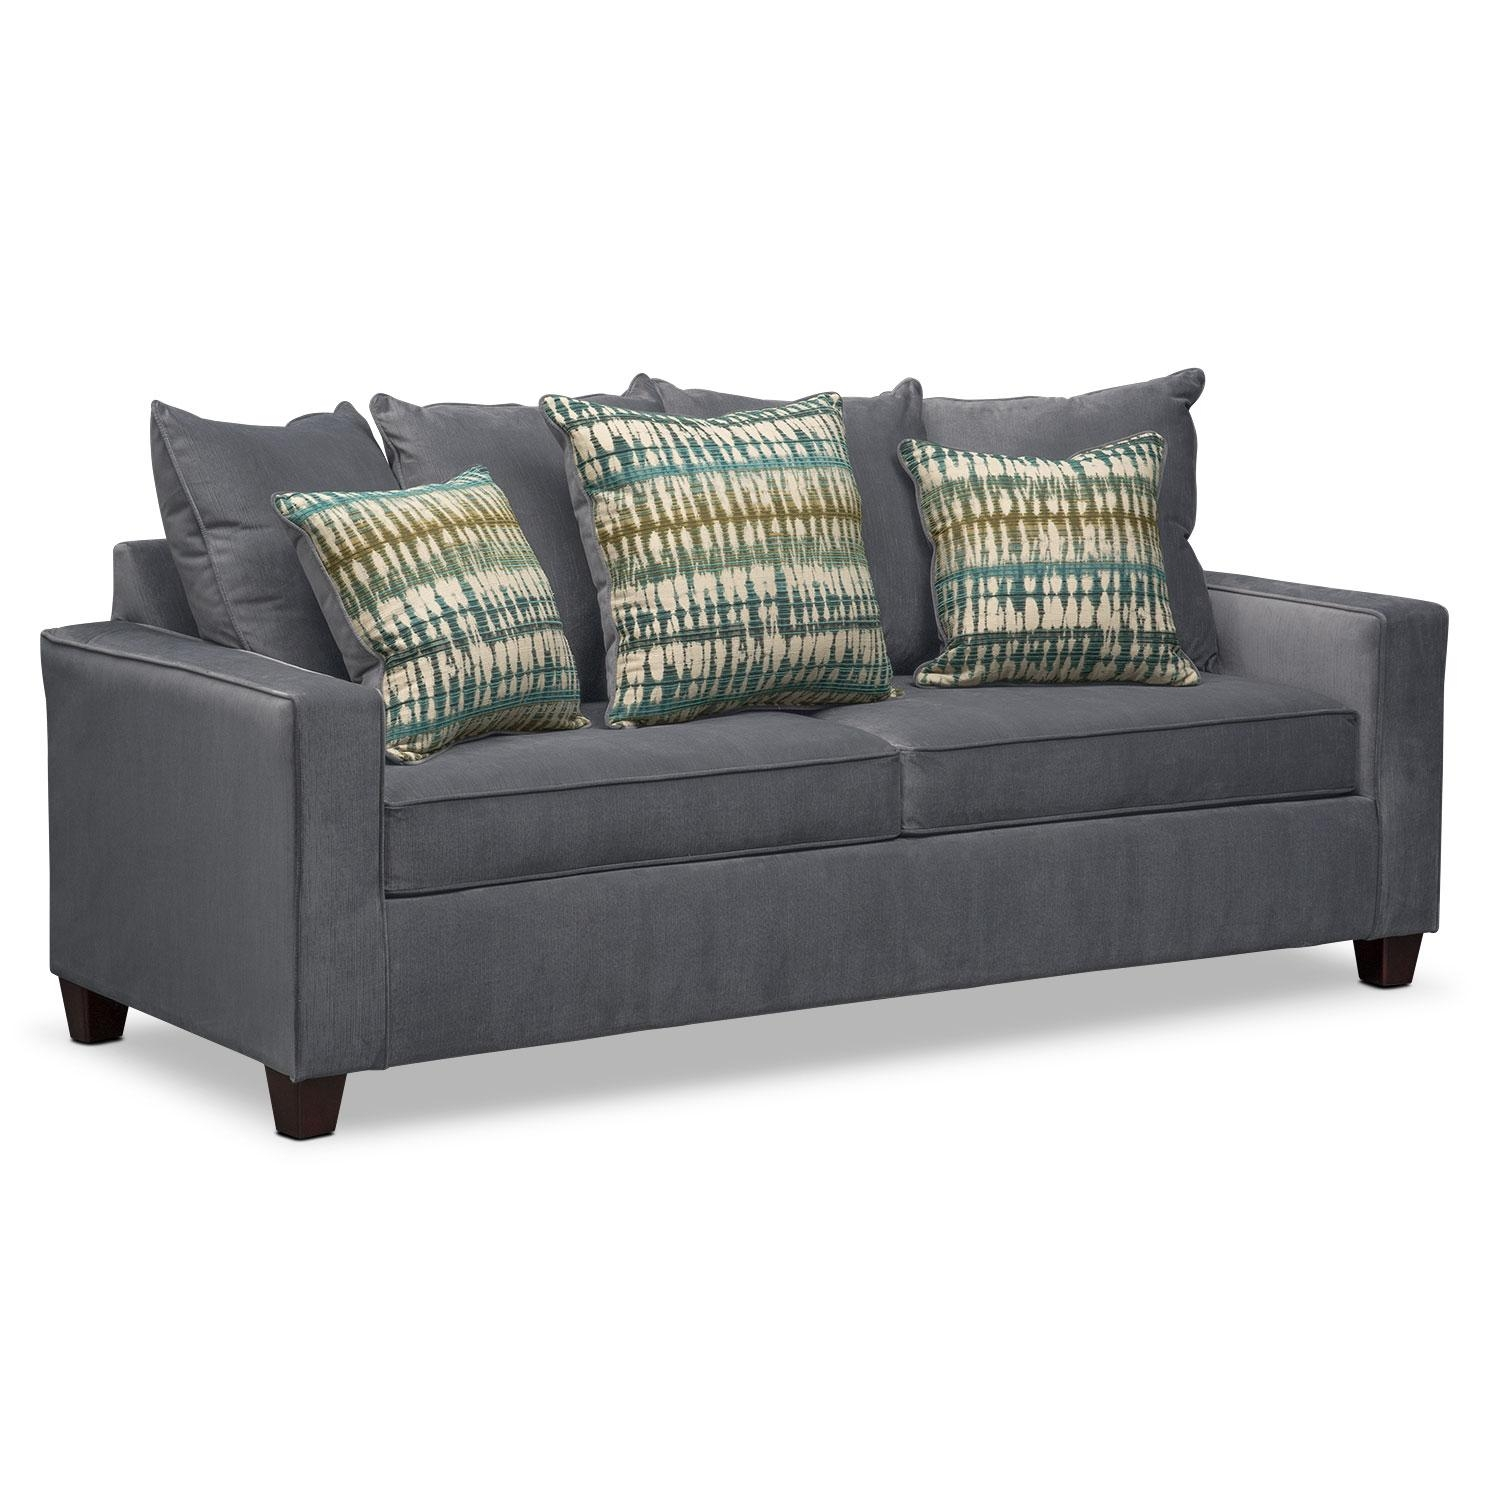 Bryden Queen Memory Foam Sleeper Sofa – Slate | Value City Furniture Intended For City Sofa Beds (Image 3 of 20)